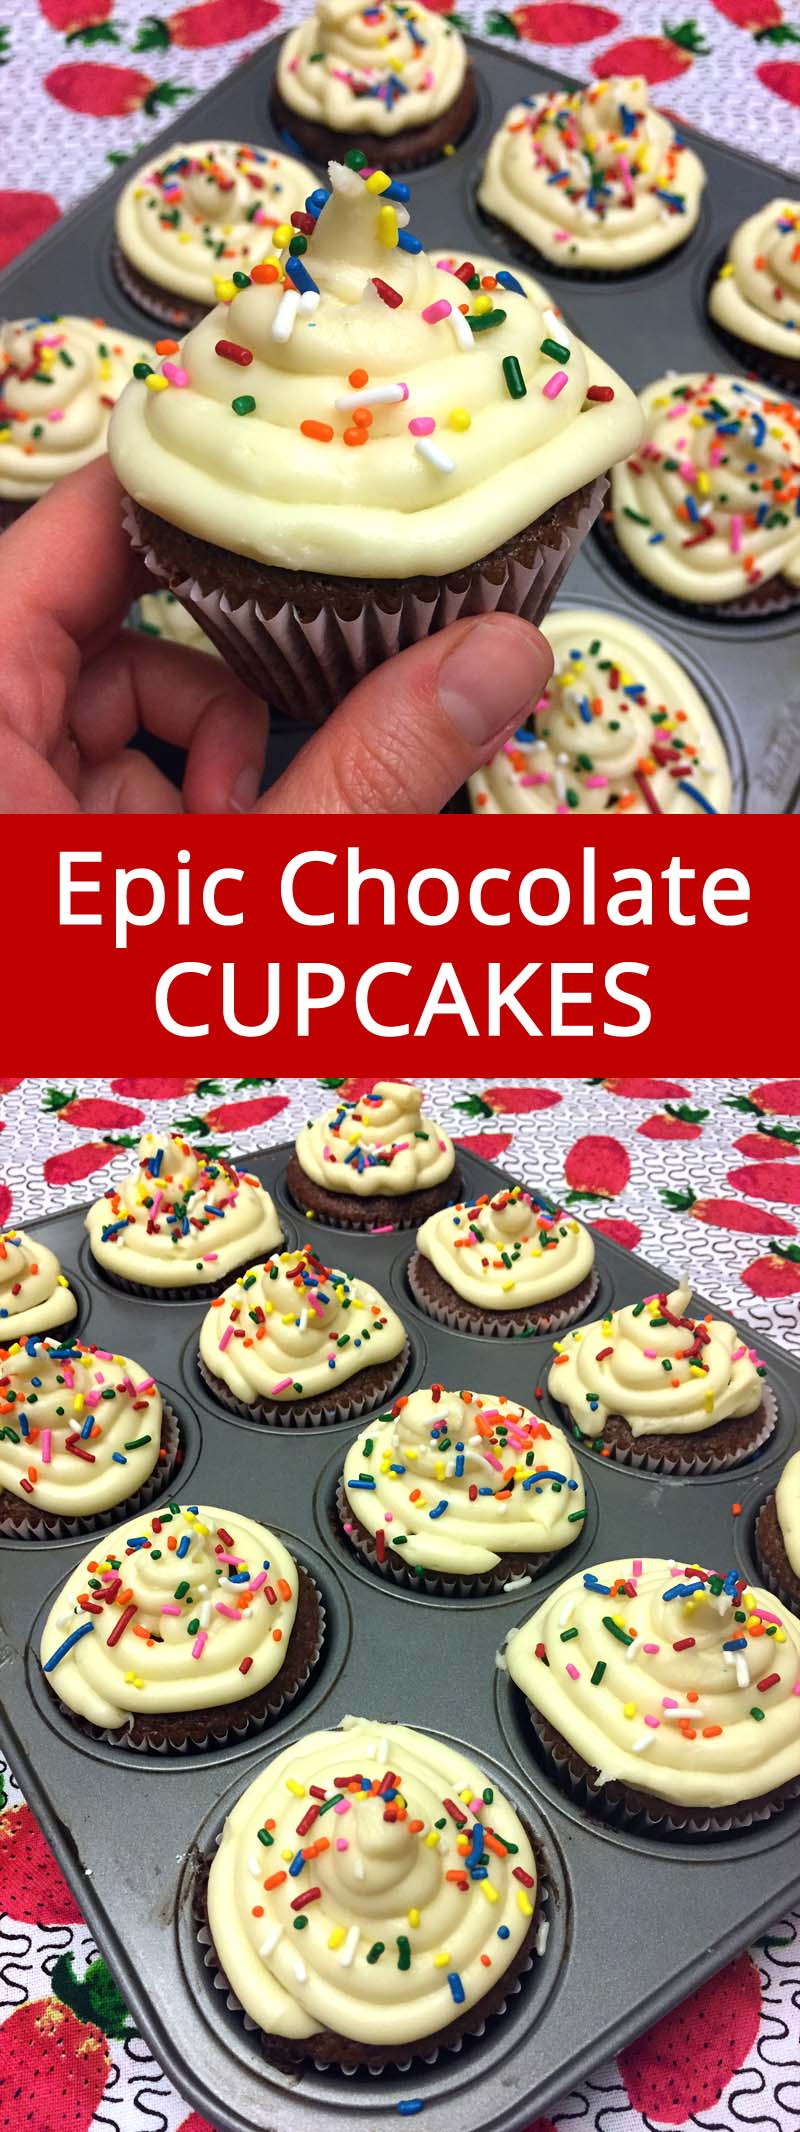 These are the best cupcakes ever! Truly amazing! This is the only chocolate cupcake recipe I'll ever need!